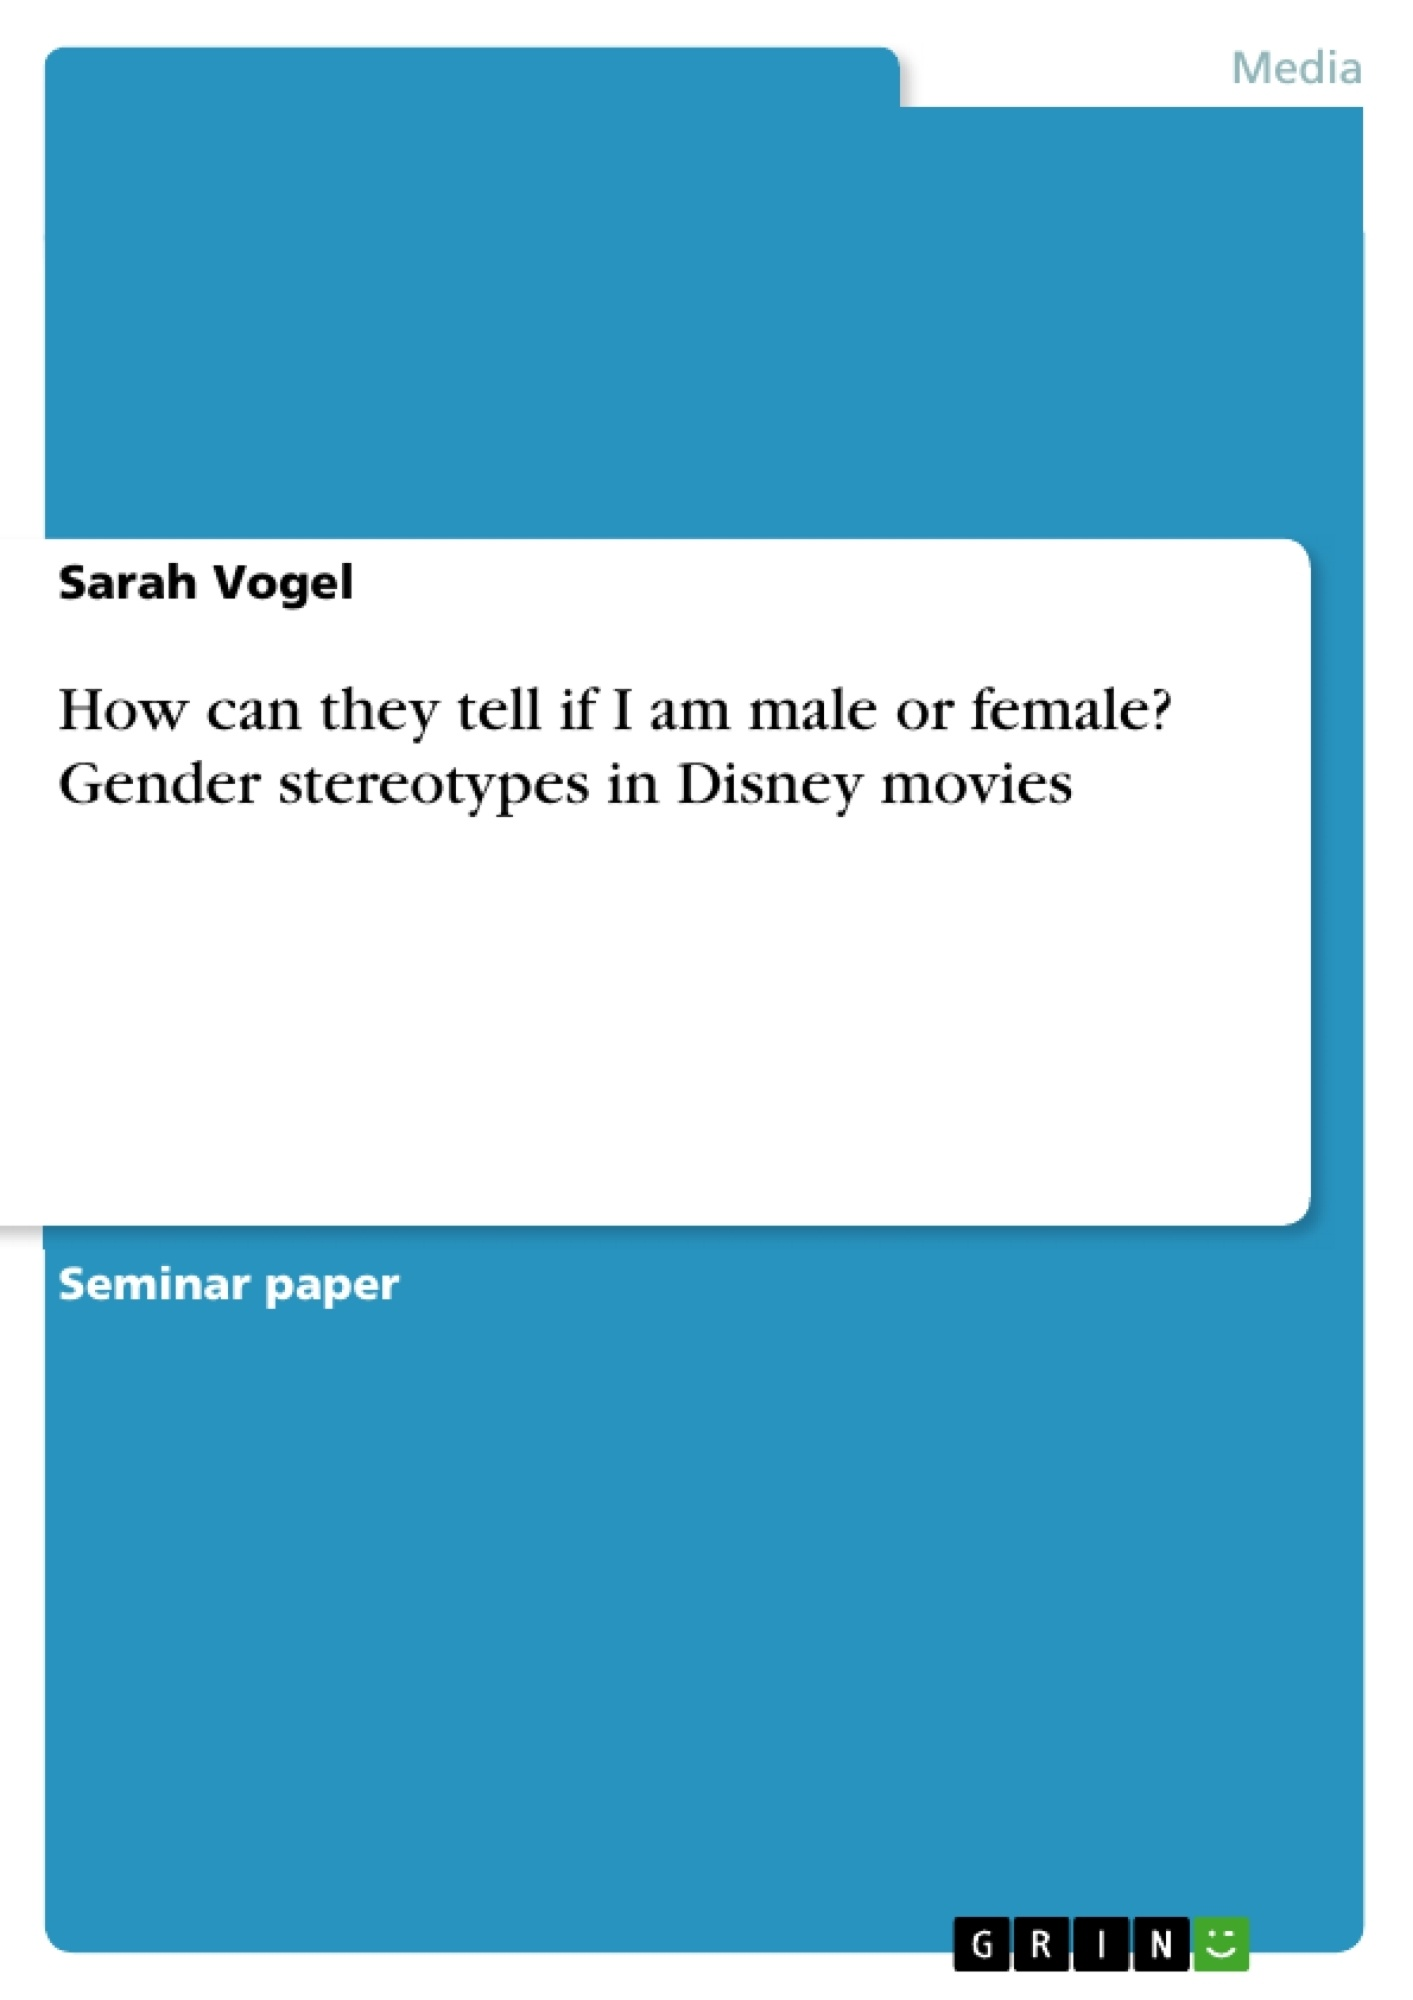 Title: How can they tell if I am male or female? Gender stereotypes in Disney movies